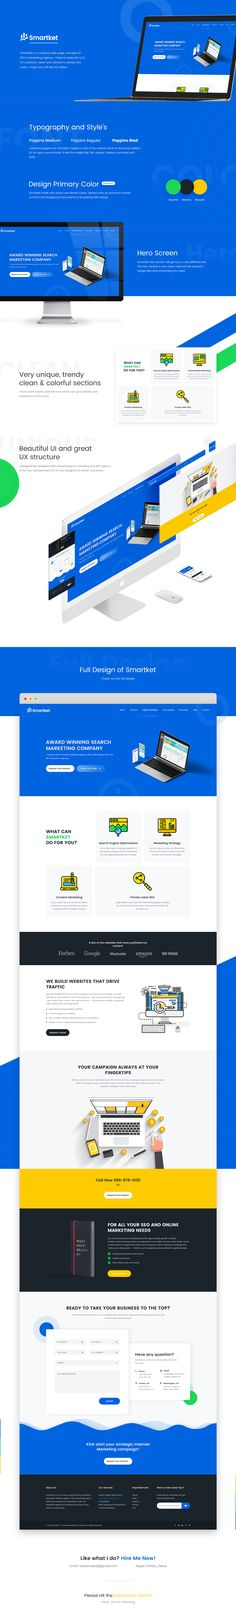 Smartket is a creative web page concept for SEO & Marketing Agency. I tried to keep the UI & UX constant, clean and vibrant to attract the users. I hope you will like my ideas.